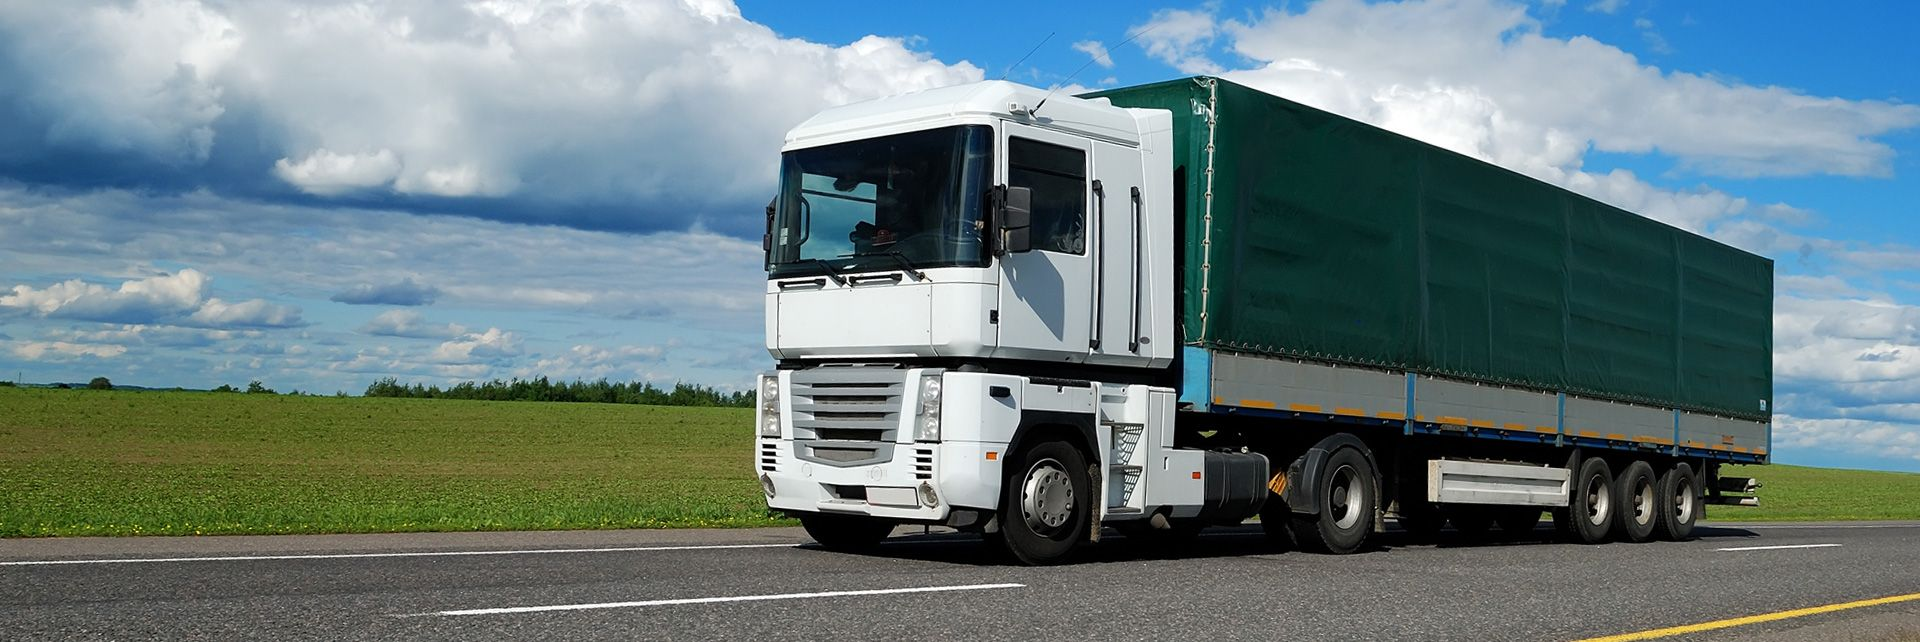 Freight transportation company in Portugal